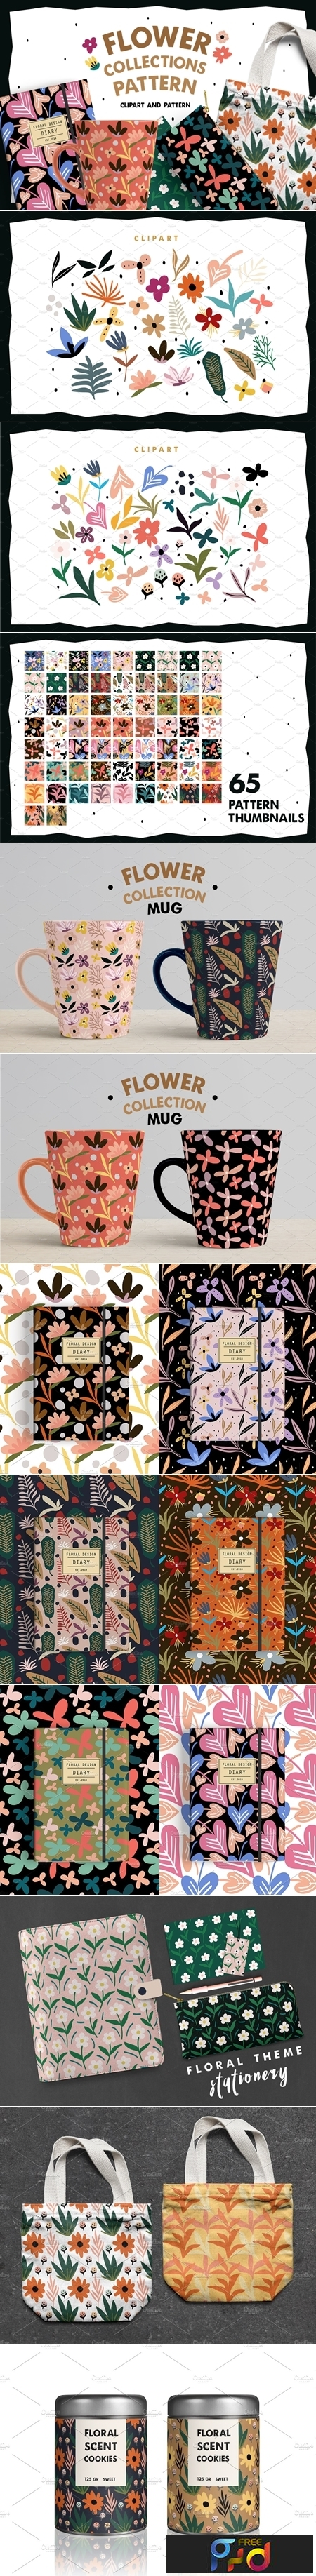 Flower Collections Pattern 3738006 1